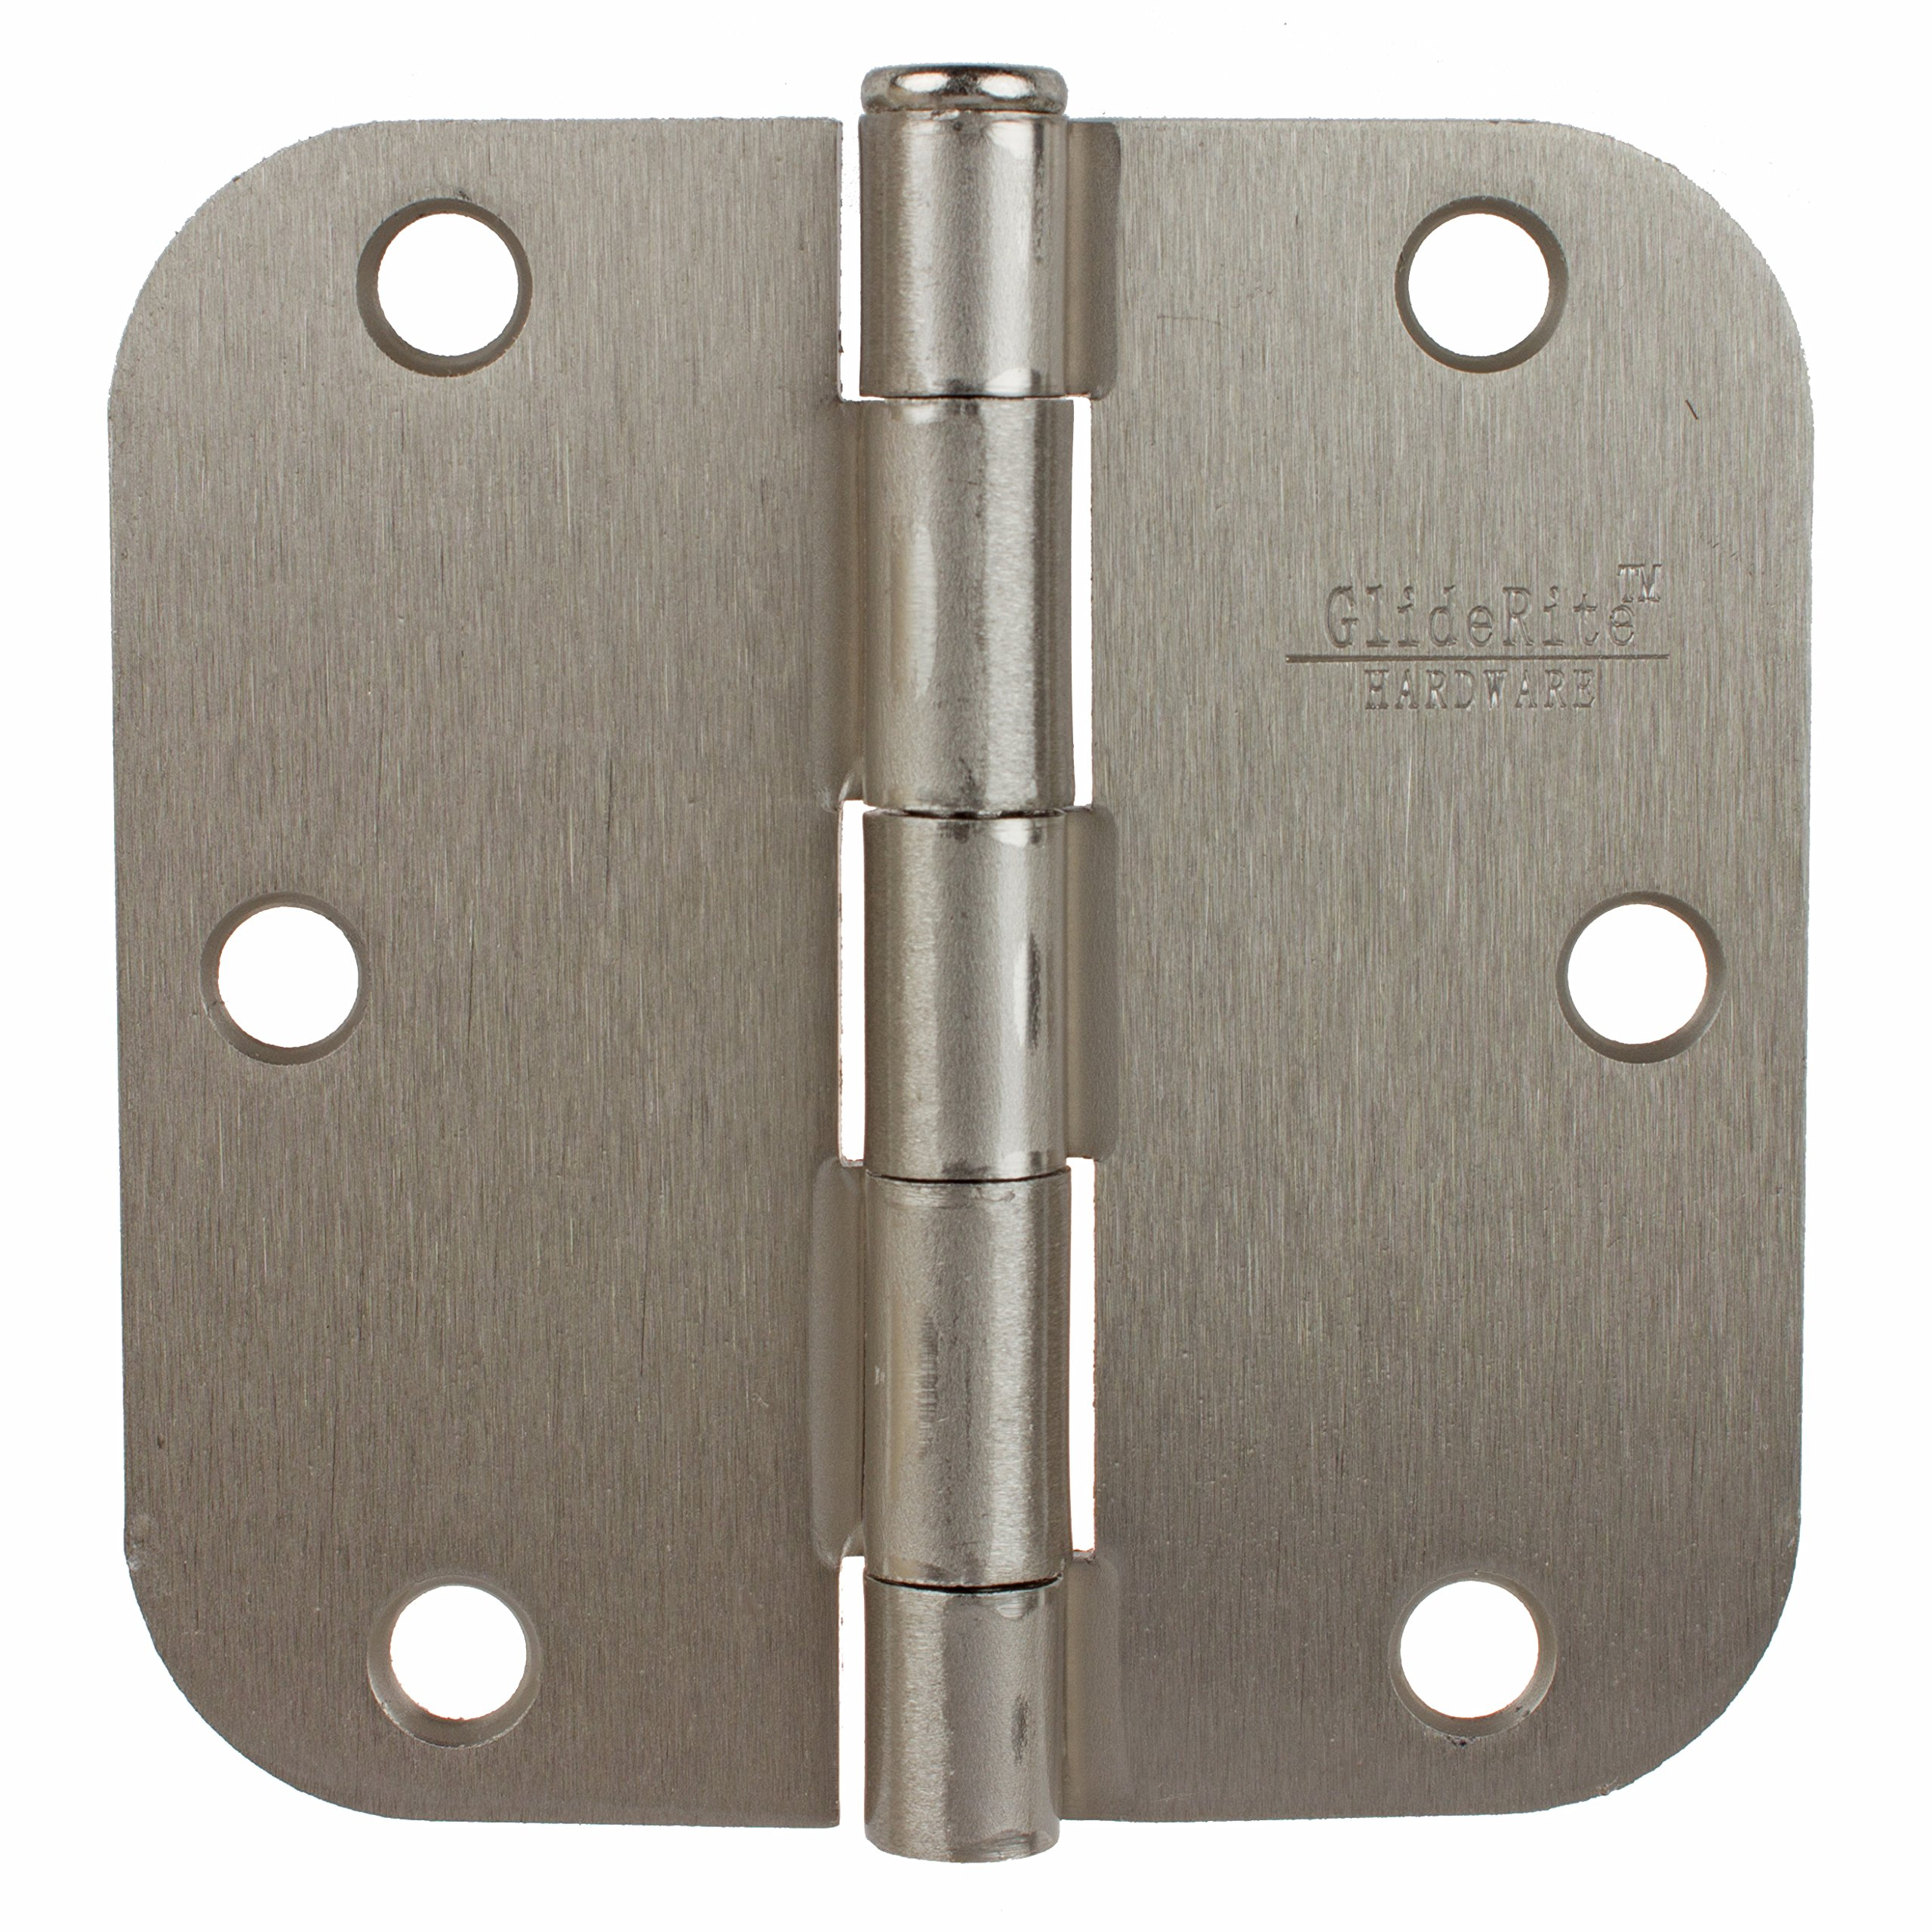 "3558-SN-30 GlideRite 3-1/2"" Brushed Satin Nickel Door Hinges 5/8'' Radius Corners – Free Shipping (Pack of 30)"